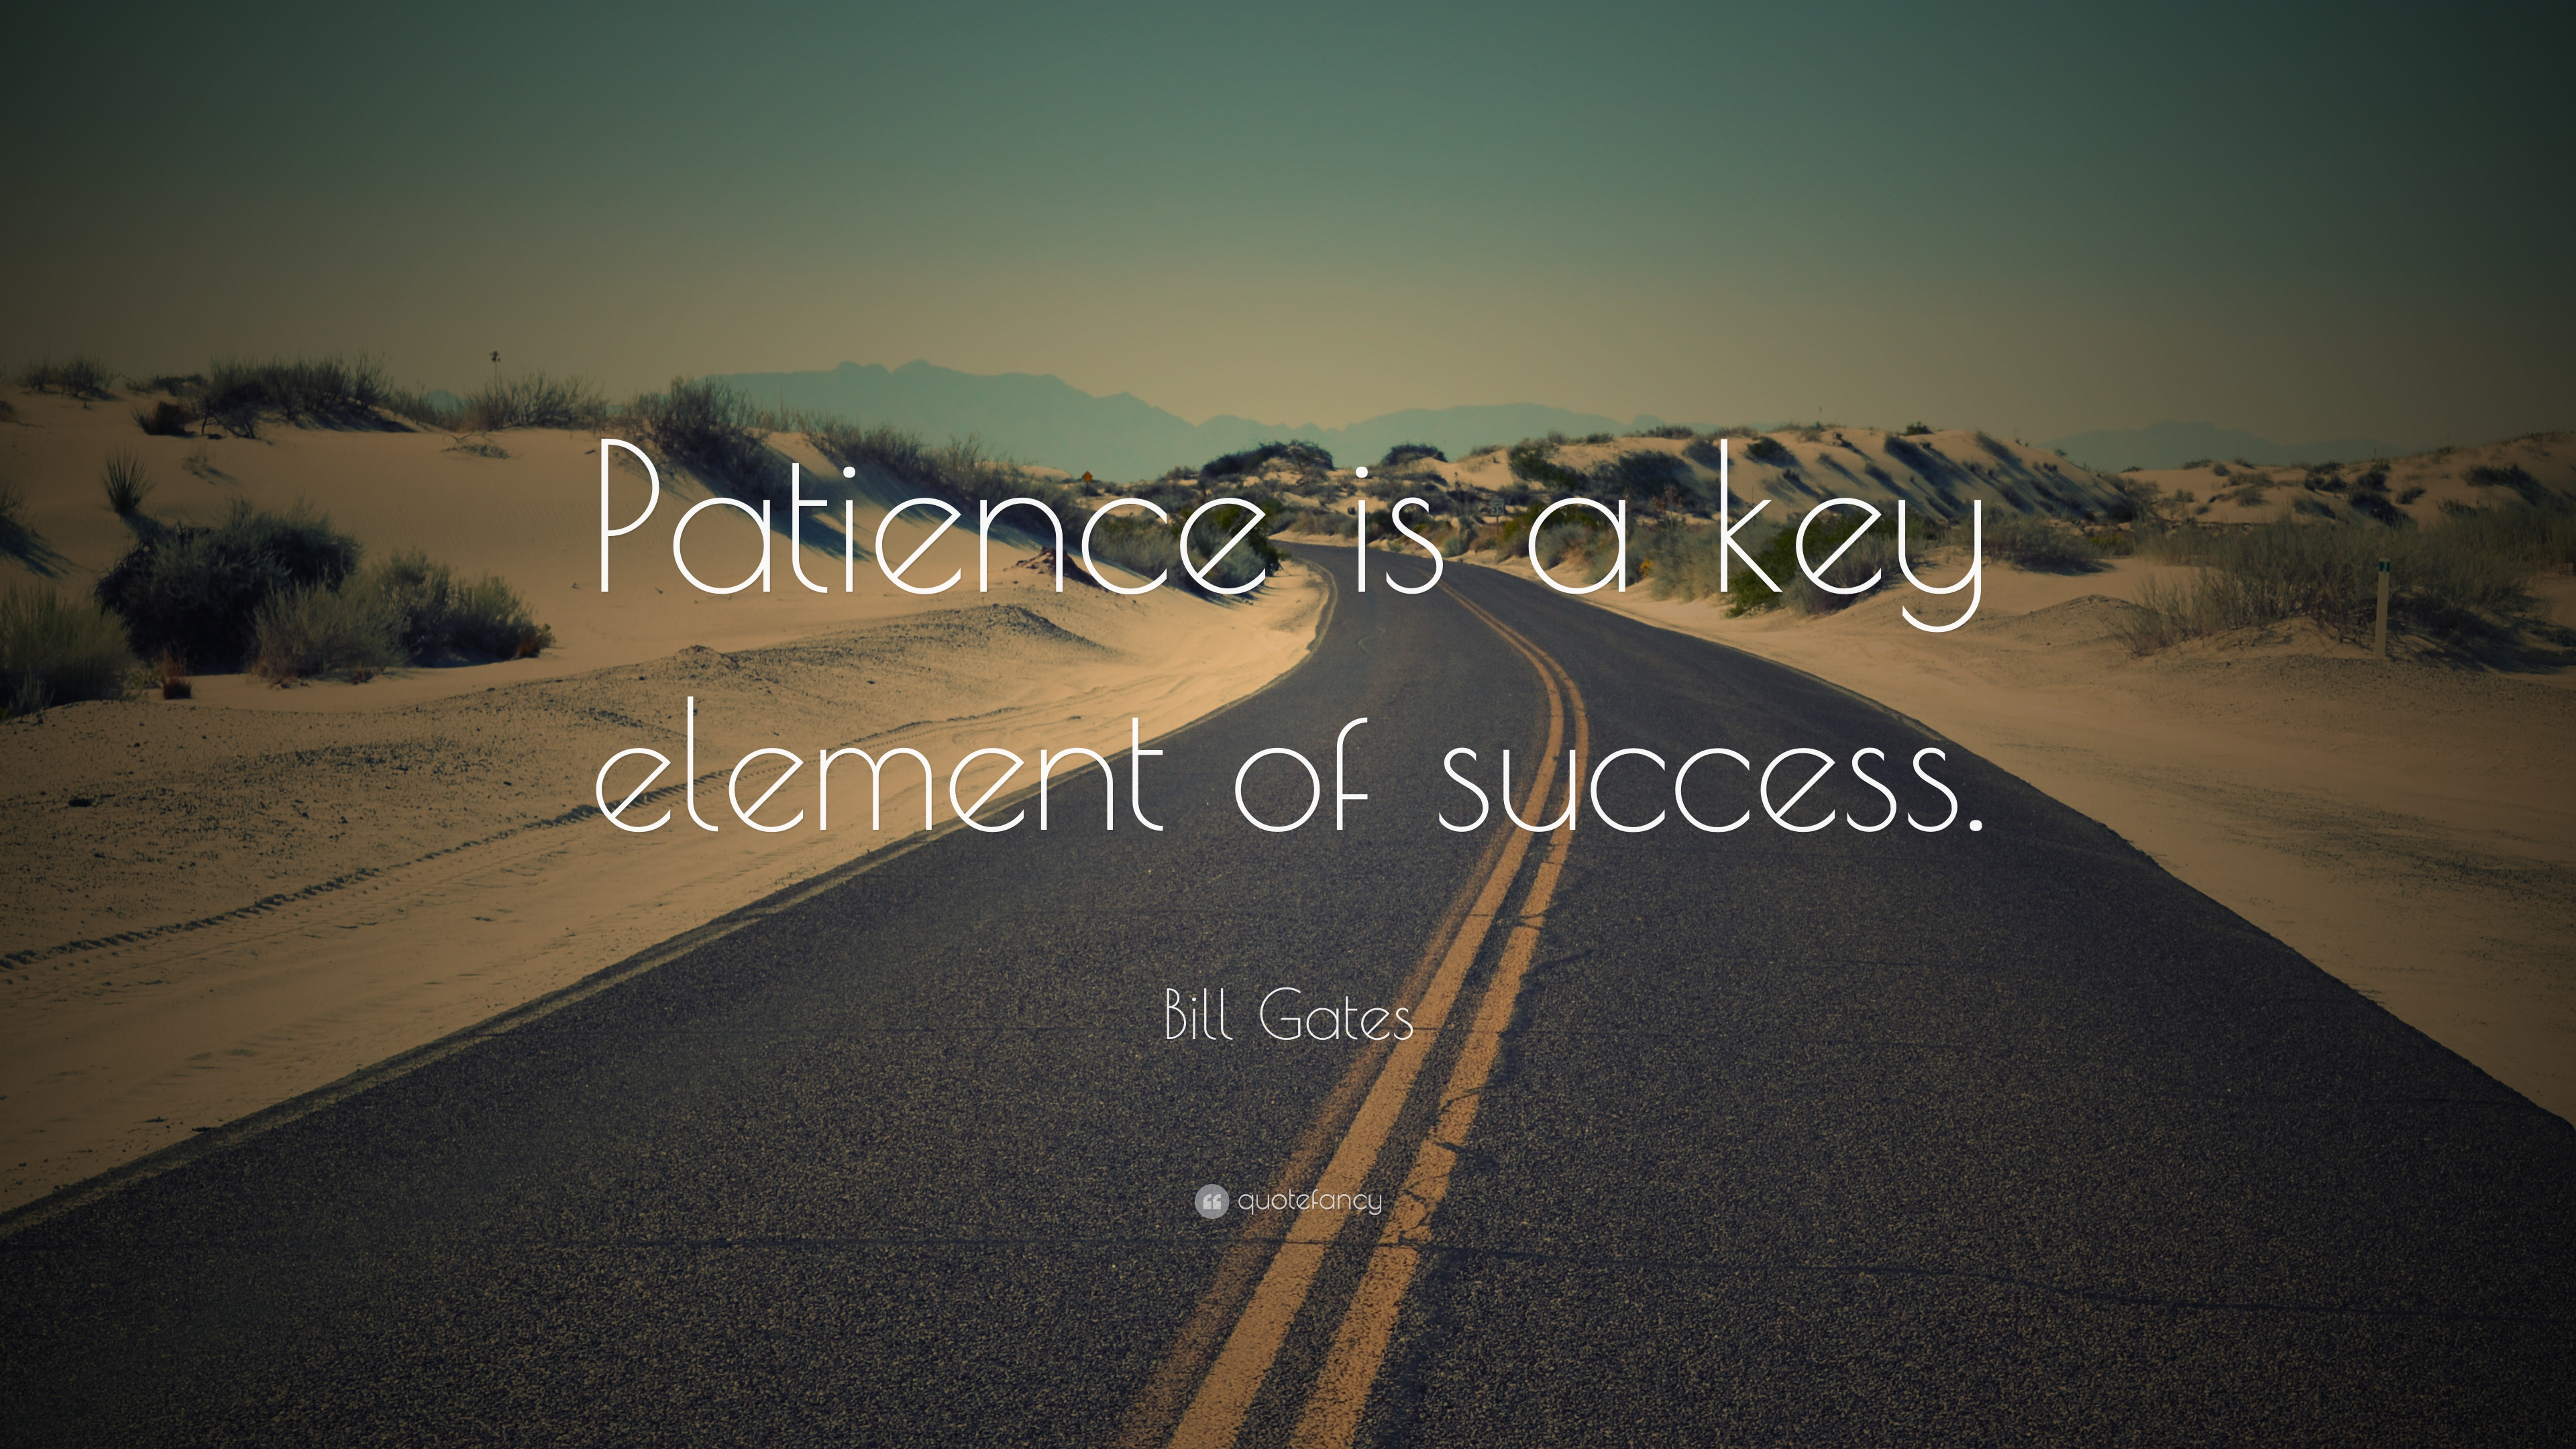 Great Bill Gates Quote: U201cPatience Is A Key Element Of Success.u201d